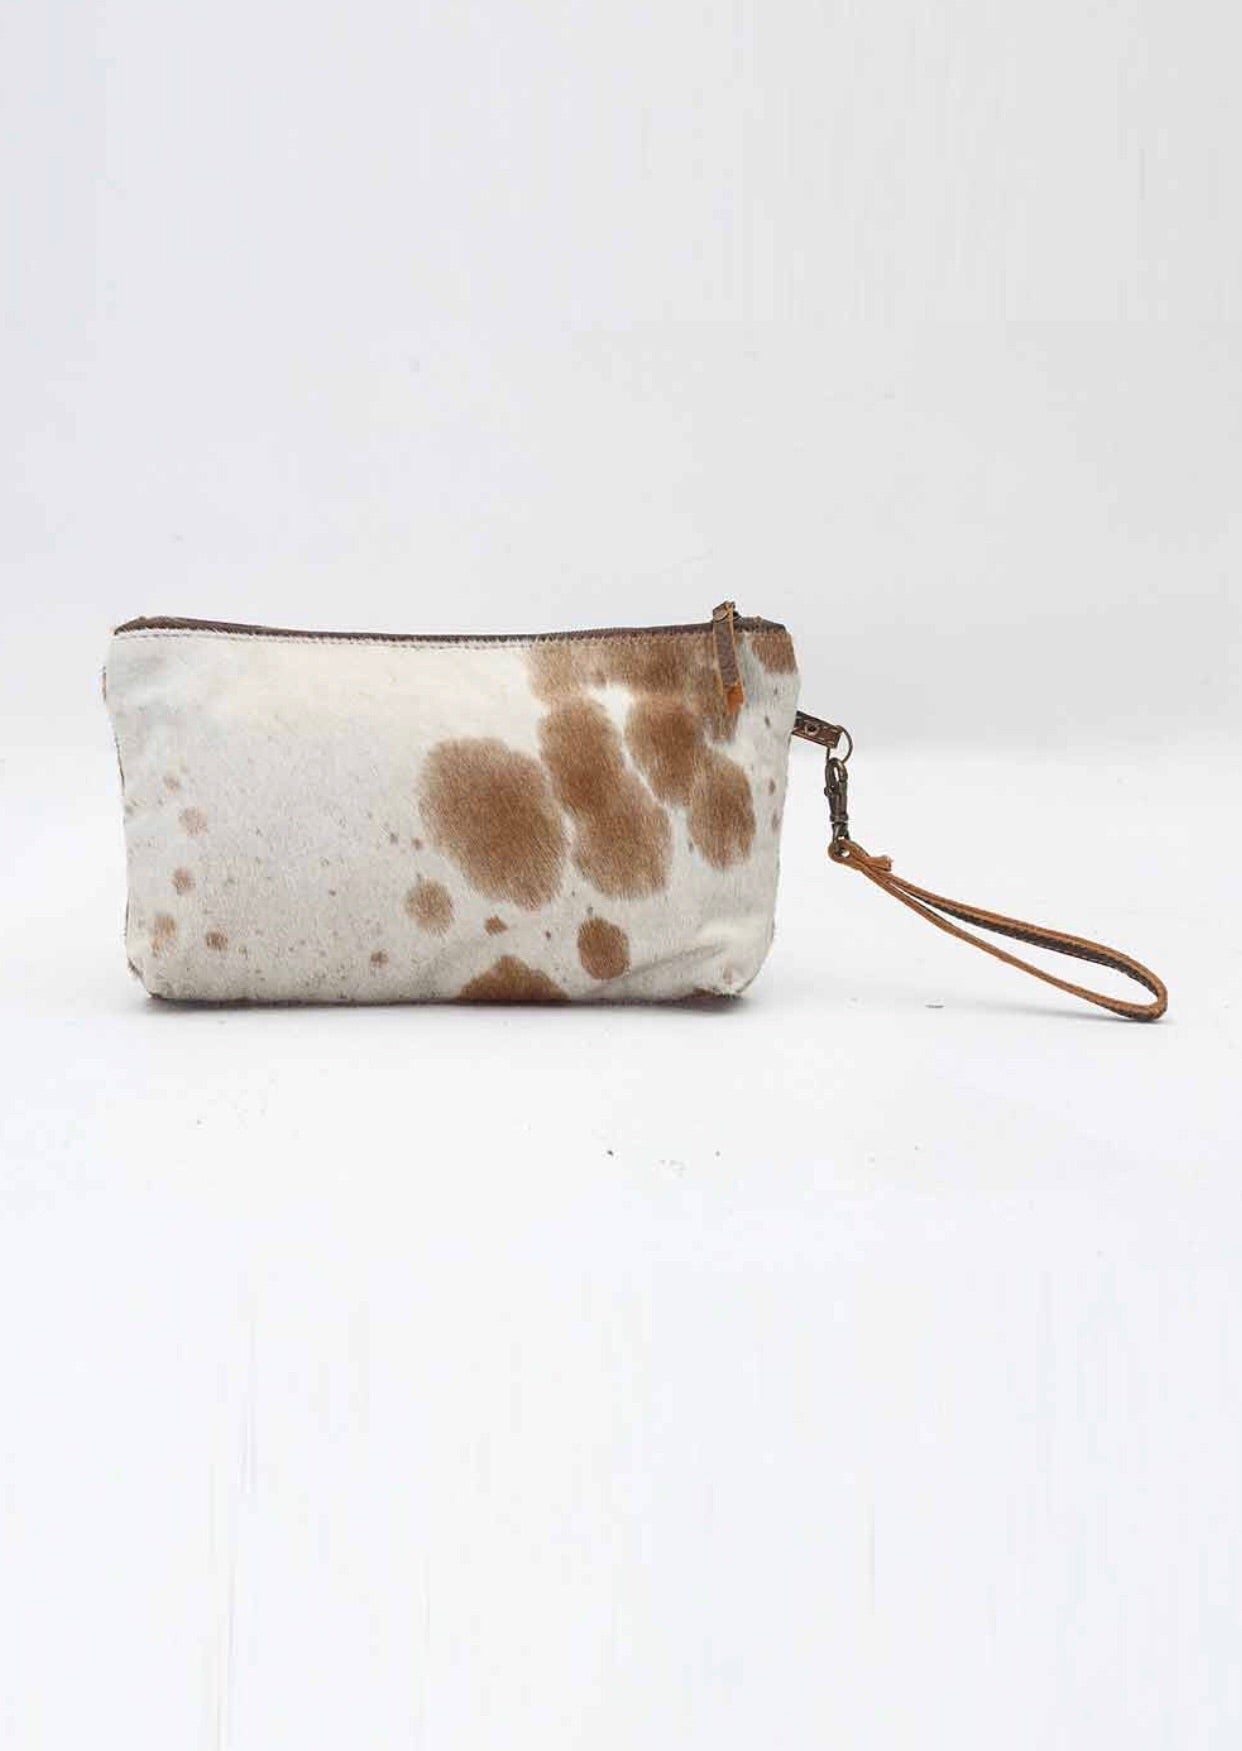 Medium hide zipper clutch